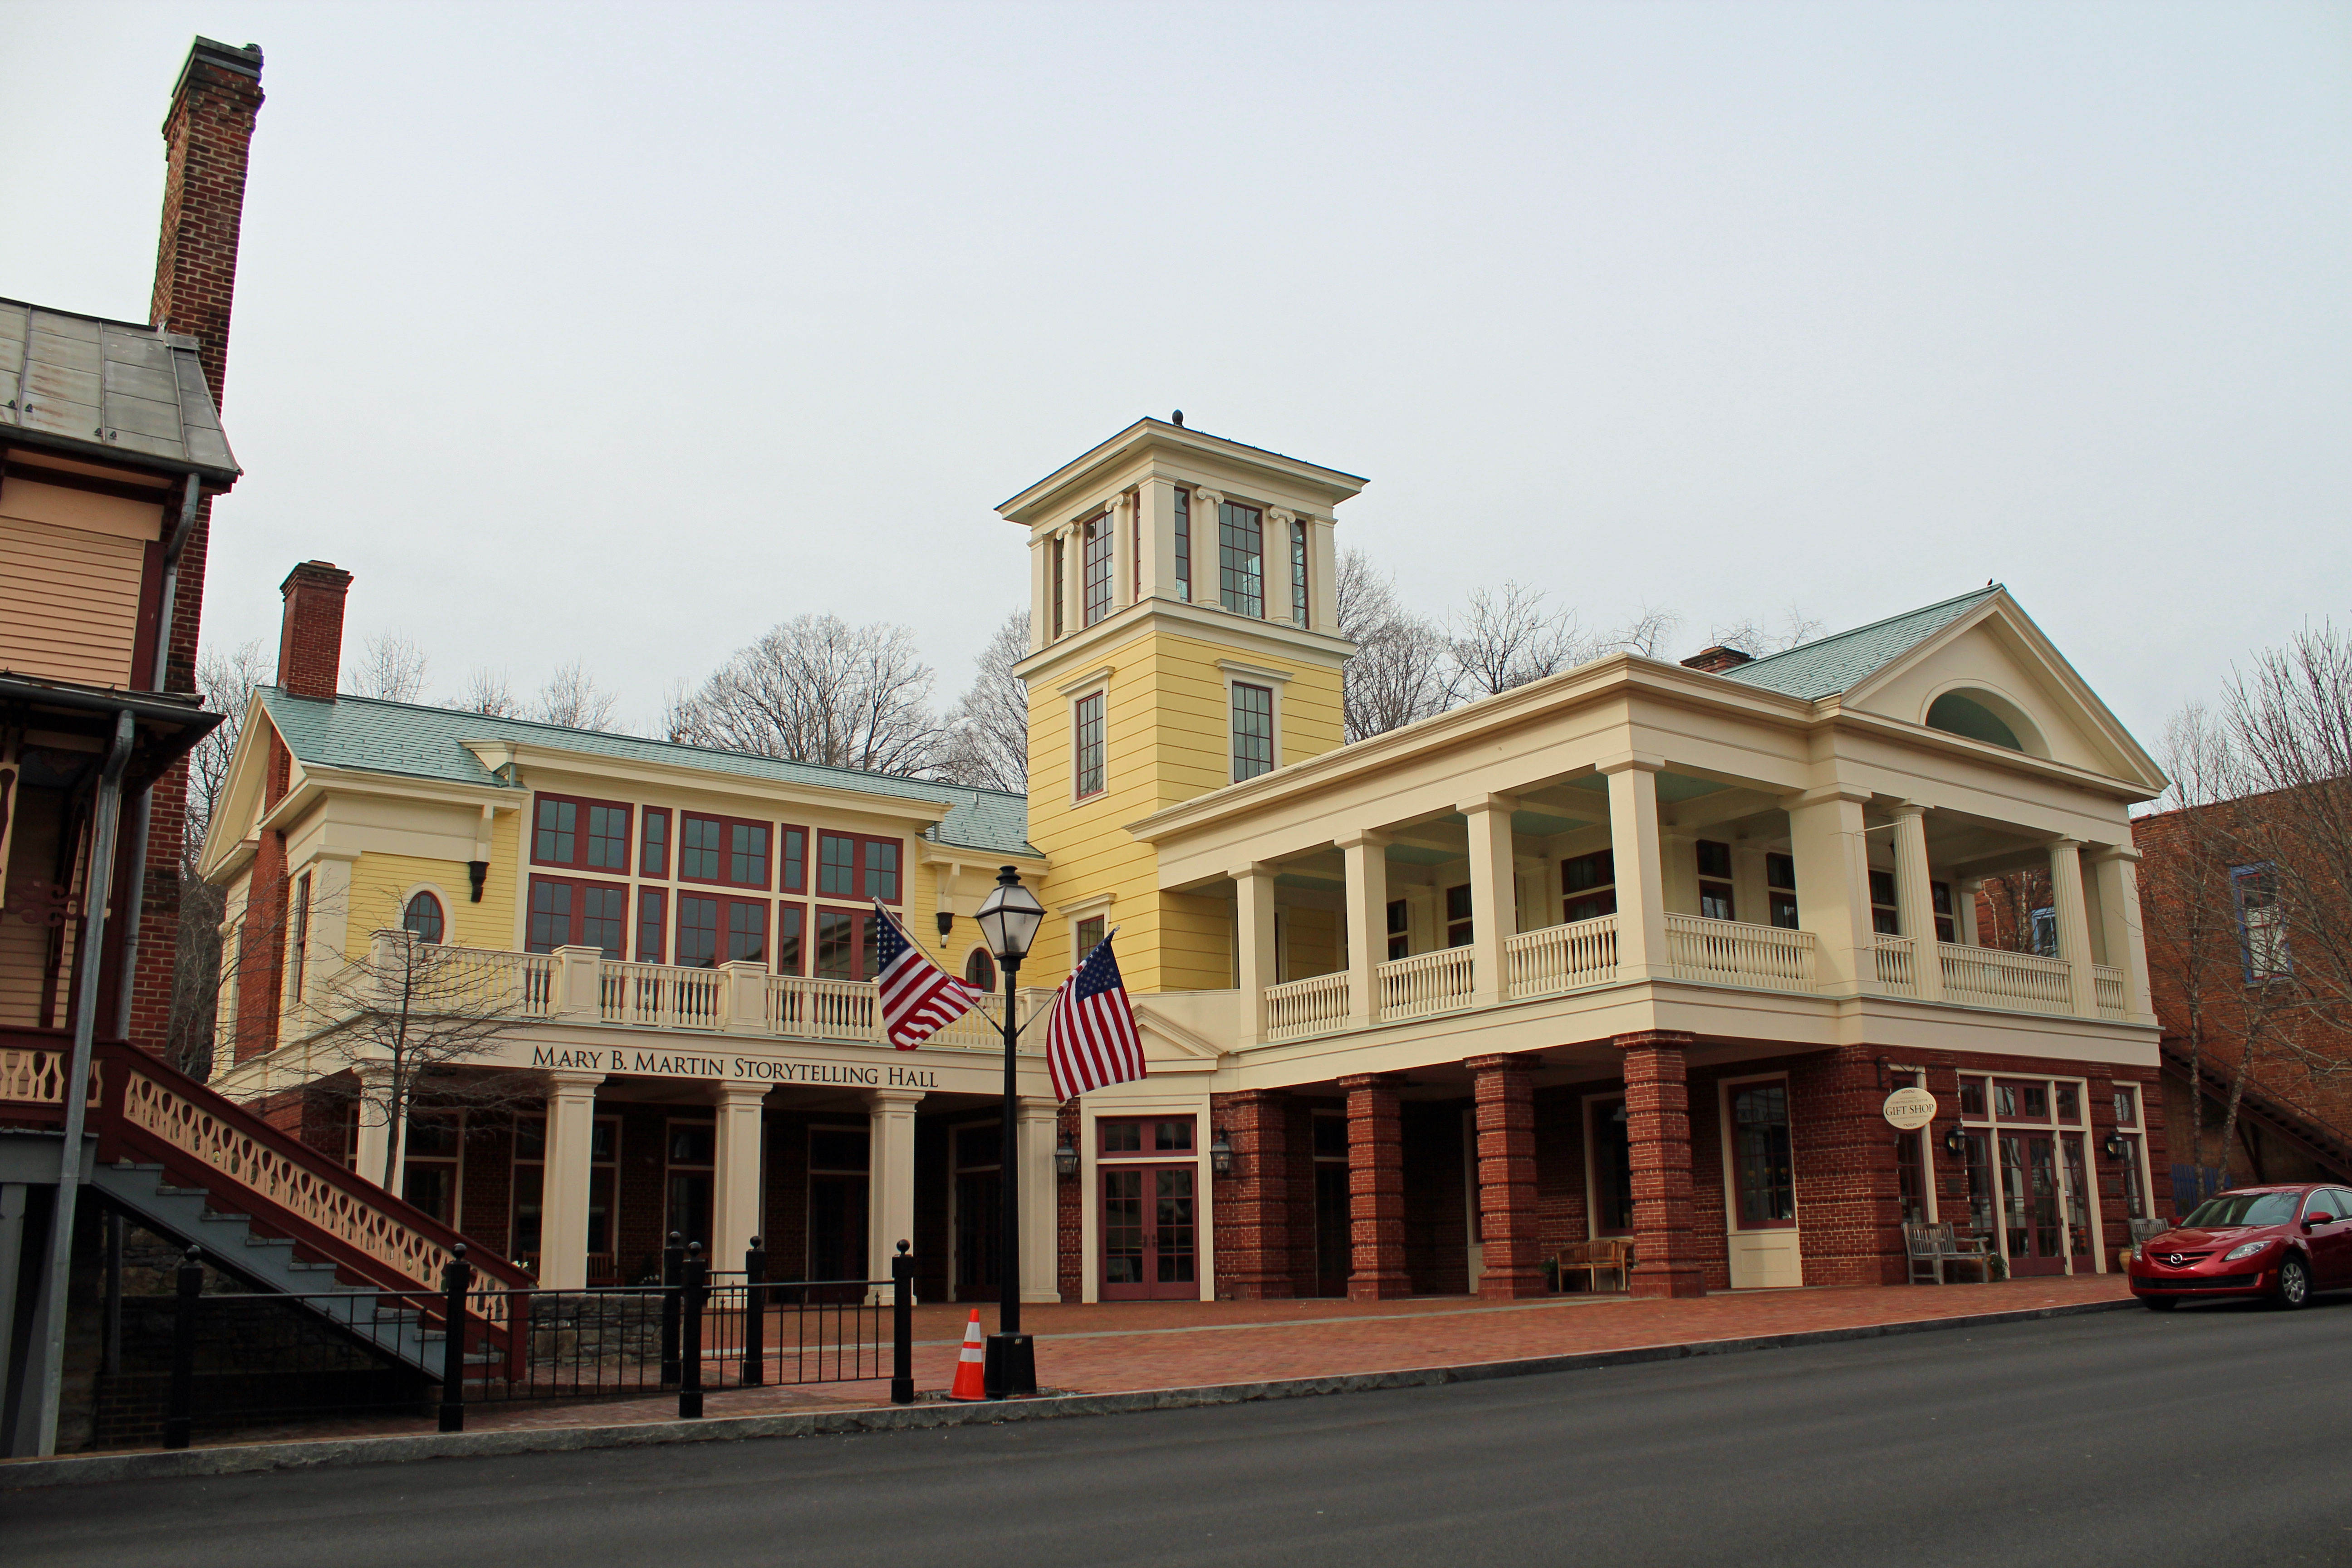 A picture of the International Storytelling Center in Jonesborough, TN